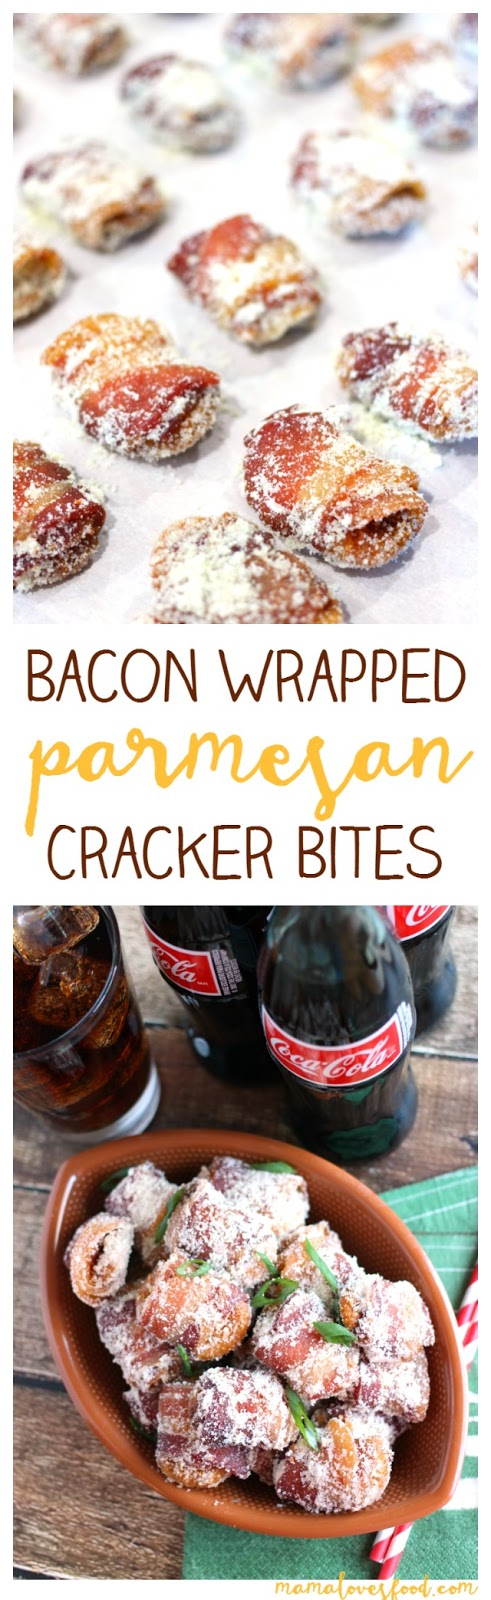 Mama Loves Food!: Bacon Wrapped Parmesan Crackers